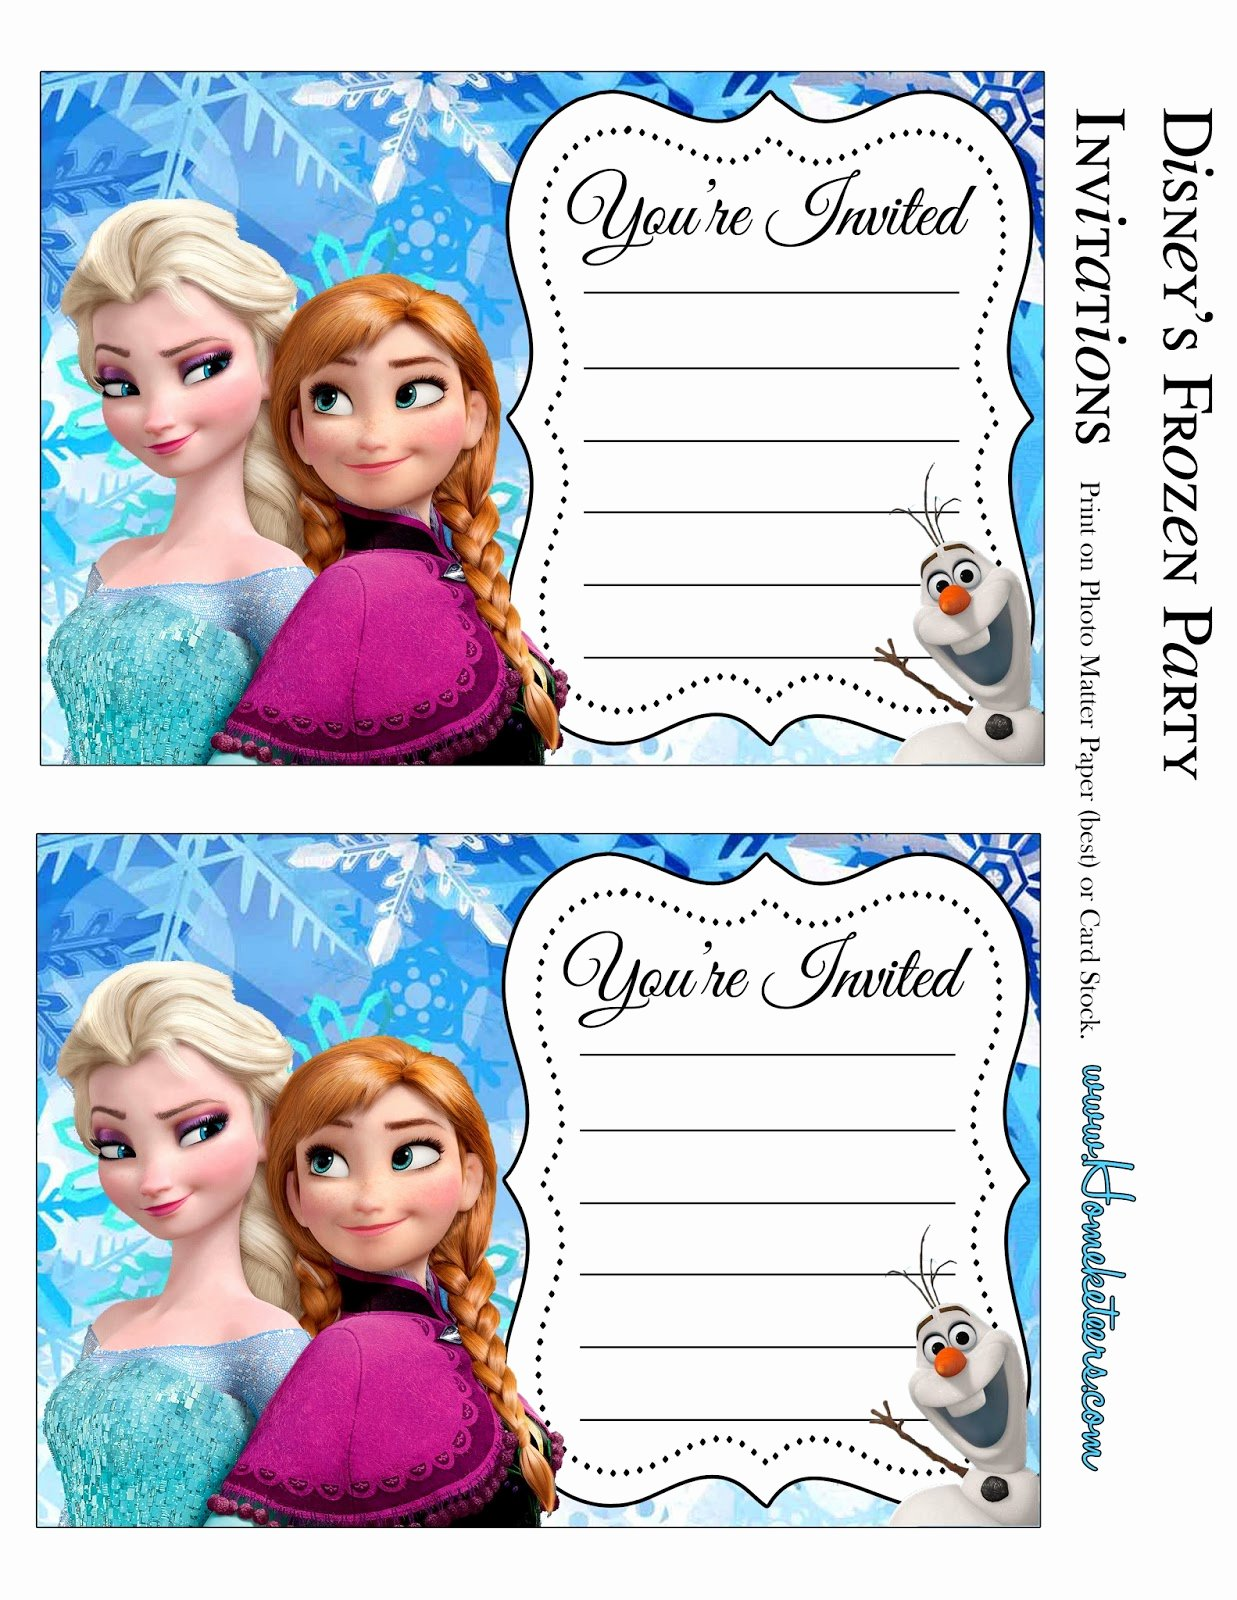 Free Frozen Invitations Templates Awesome Frozen Party Free Printable Invitations